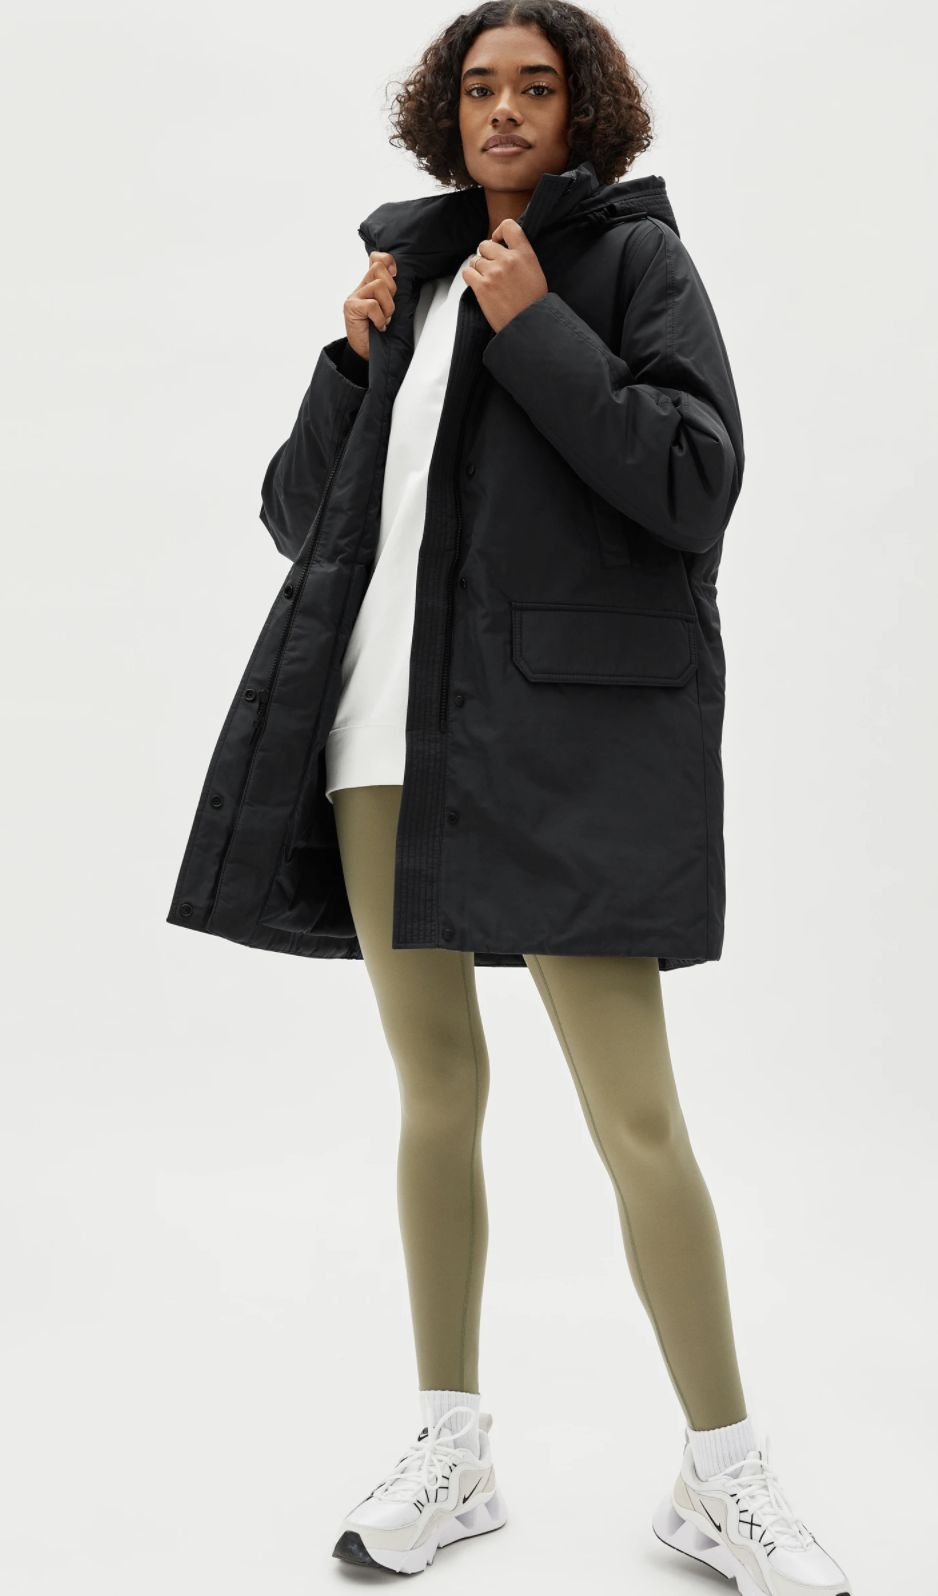 The Re:Down Military Parka - Everlane, $229 (originally $287)